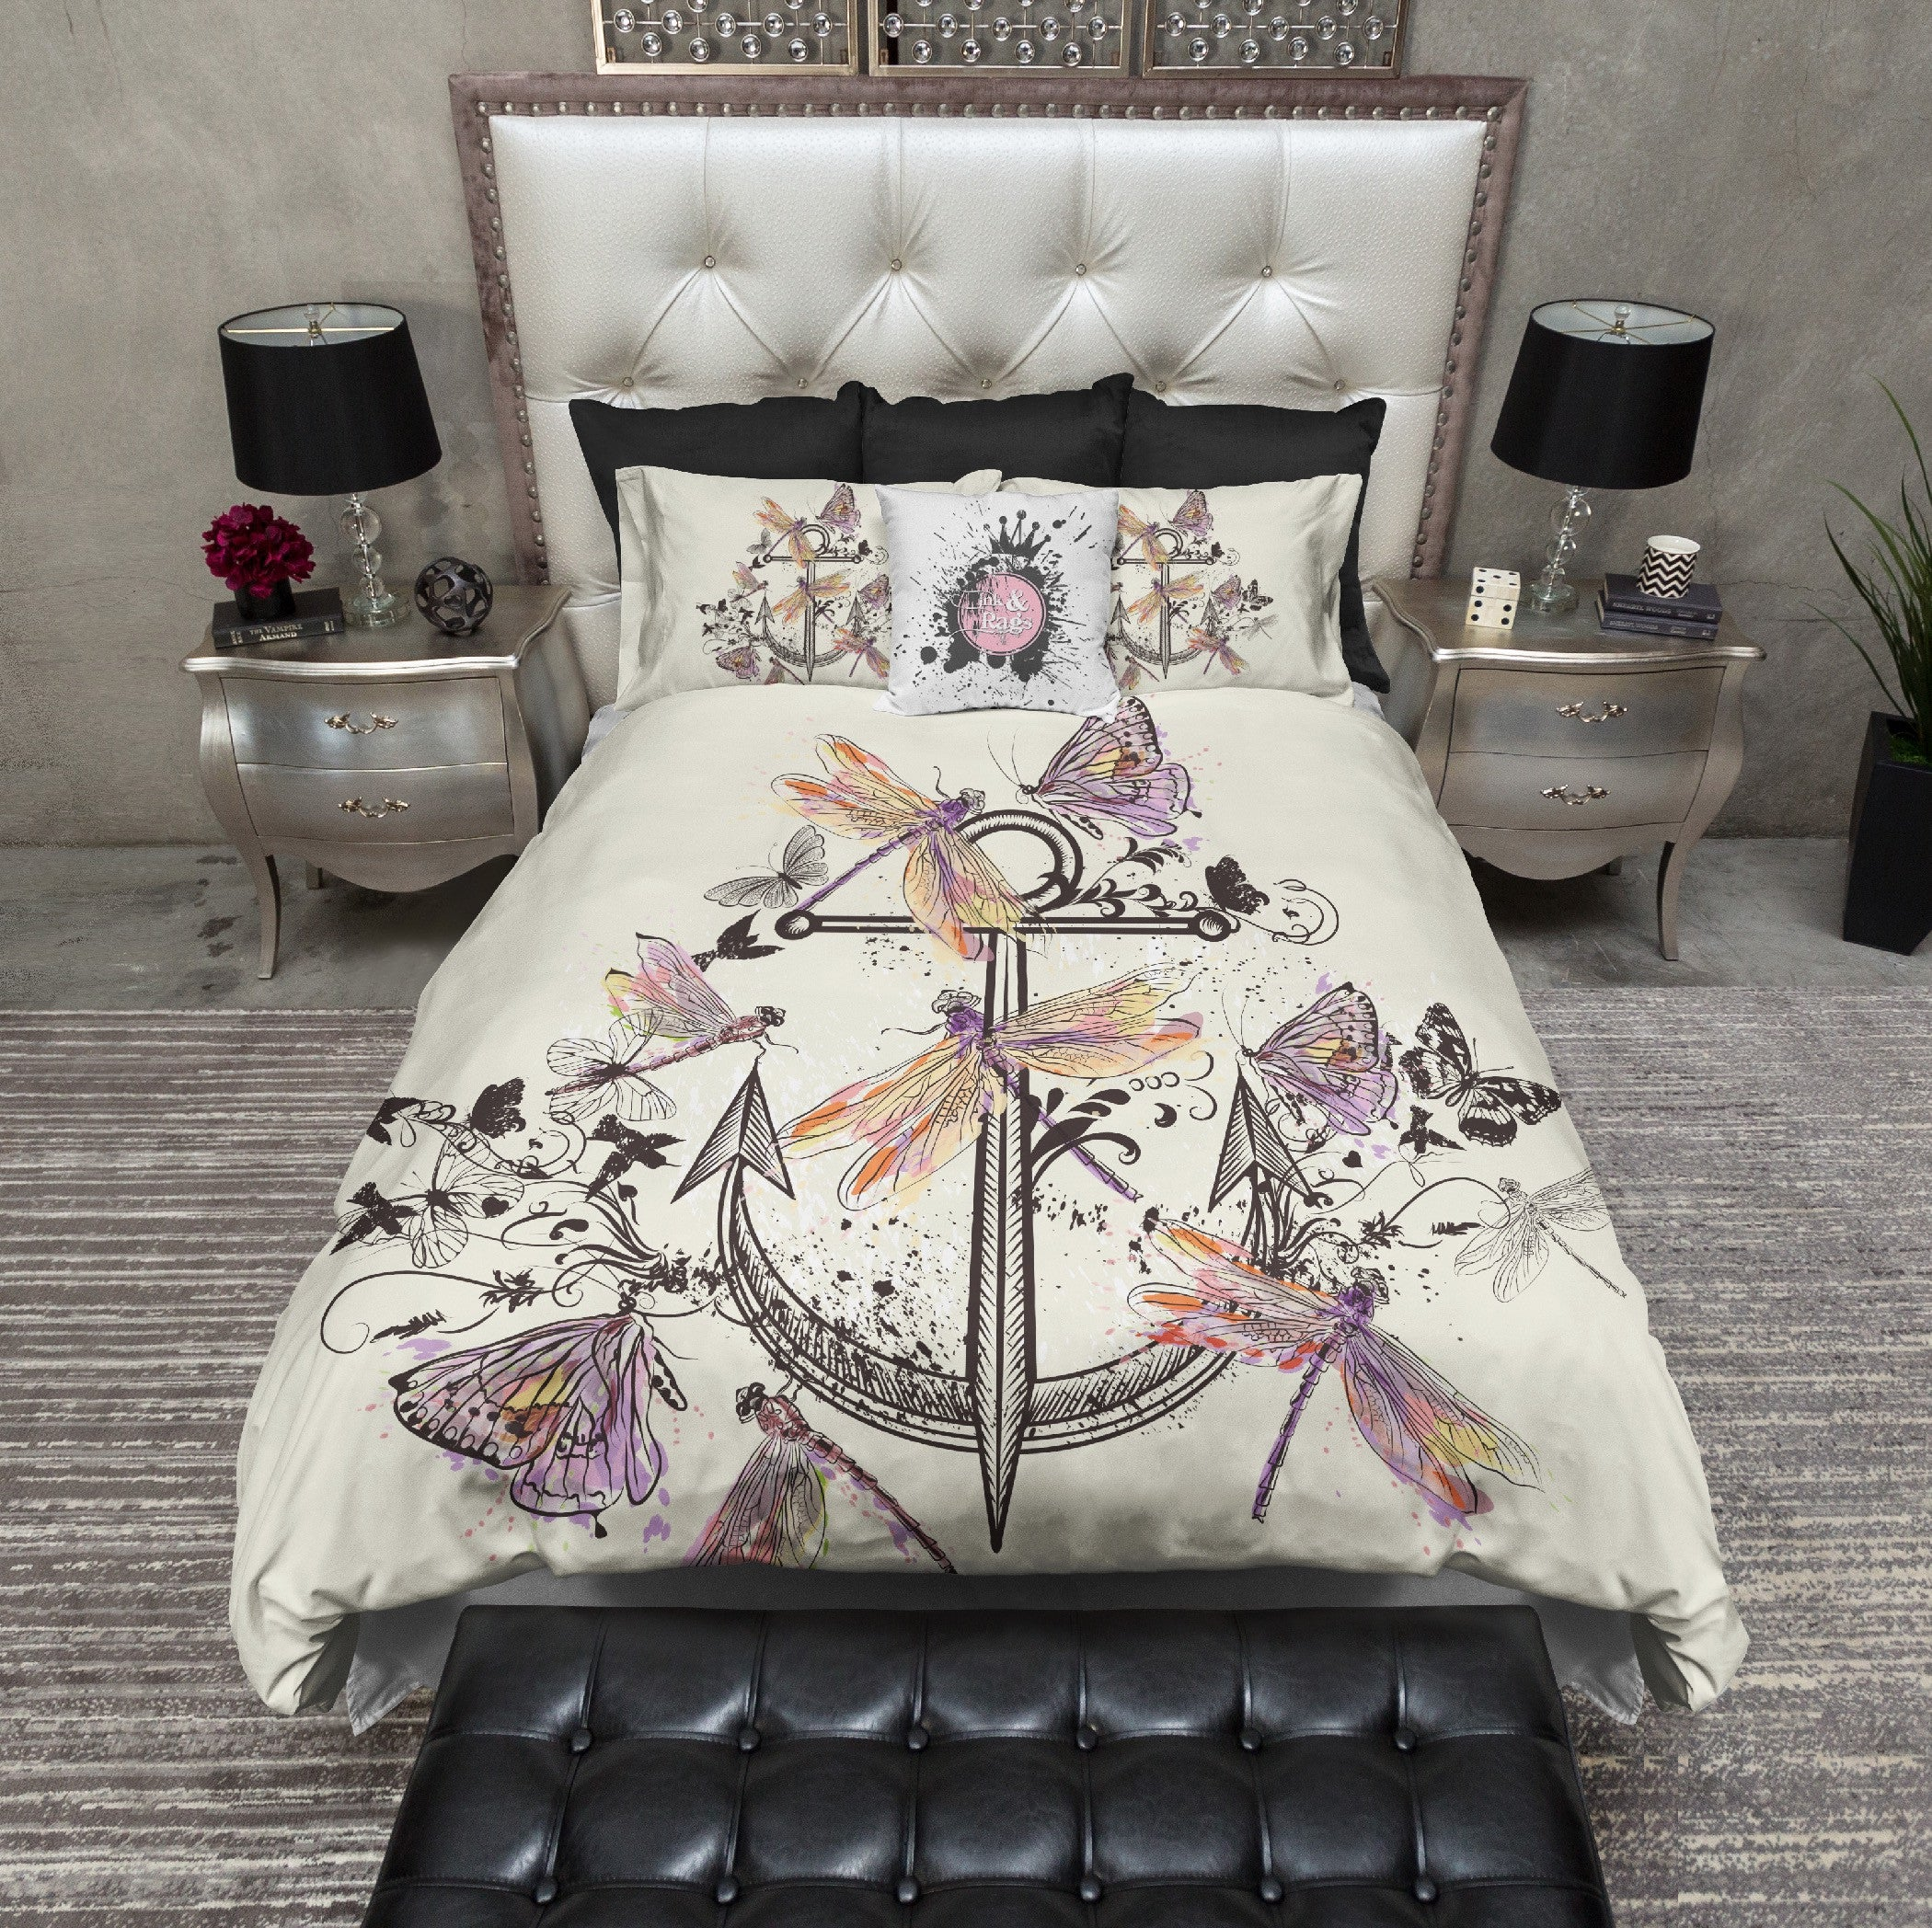 Anchor Butterfly Dragonfly Paint Splatter Bedding CREAM - Ink and Rags : dragonfly quilt cover - Adamdwight.com